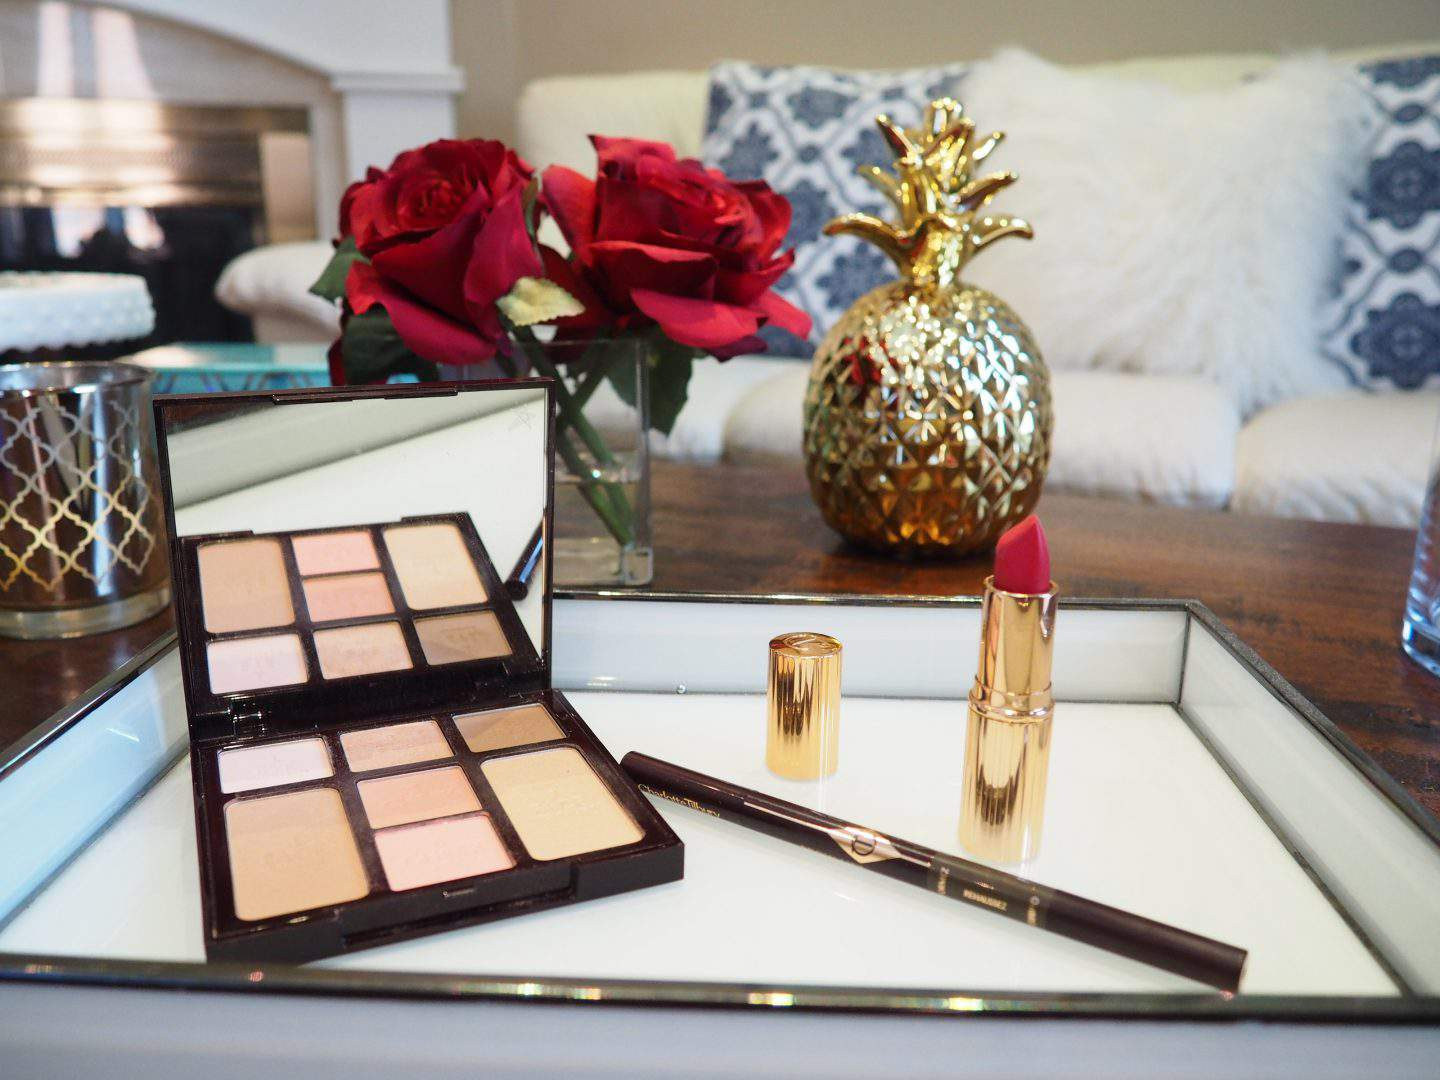 Charlotte Tilbury Must Have Items for Spring